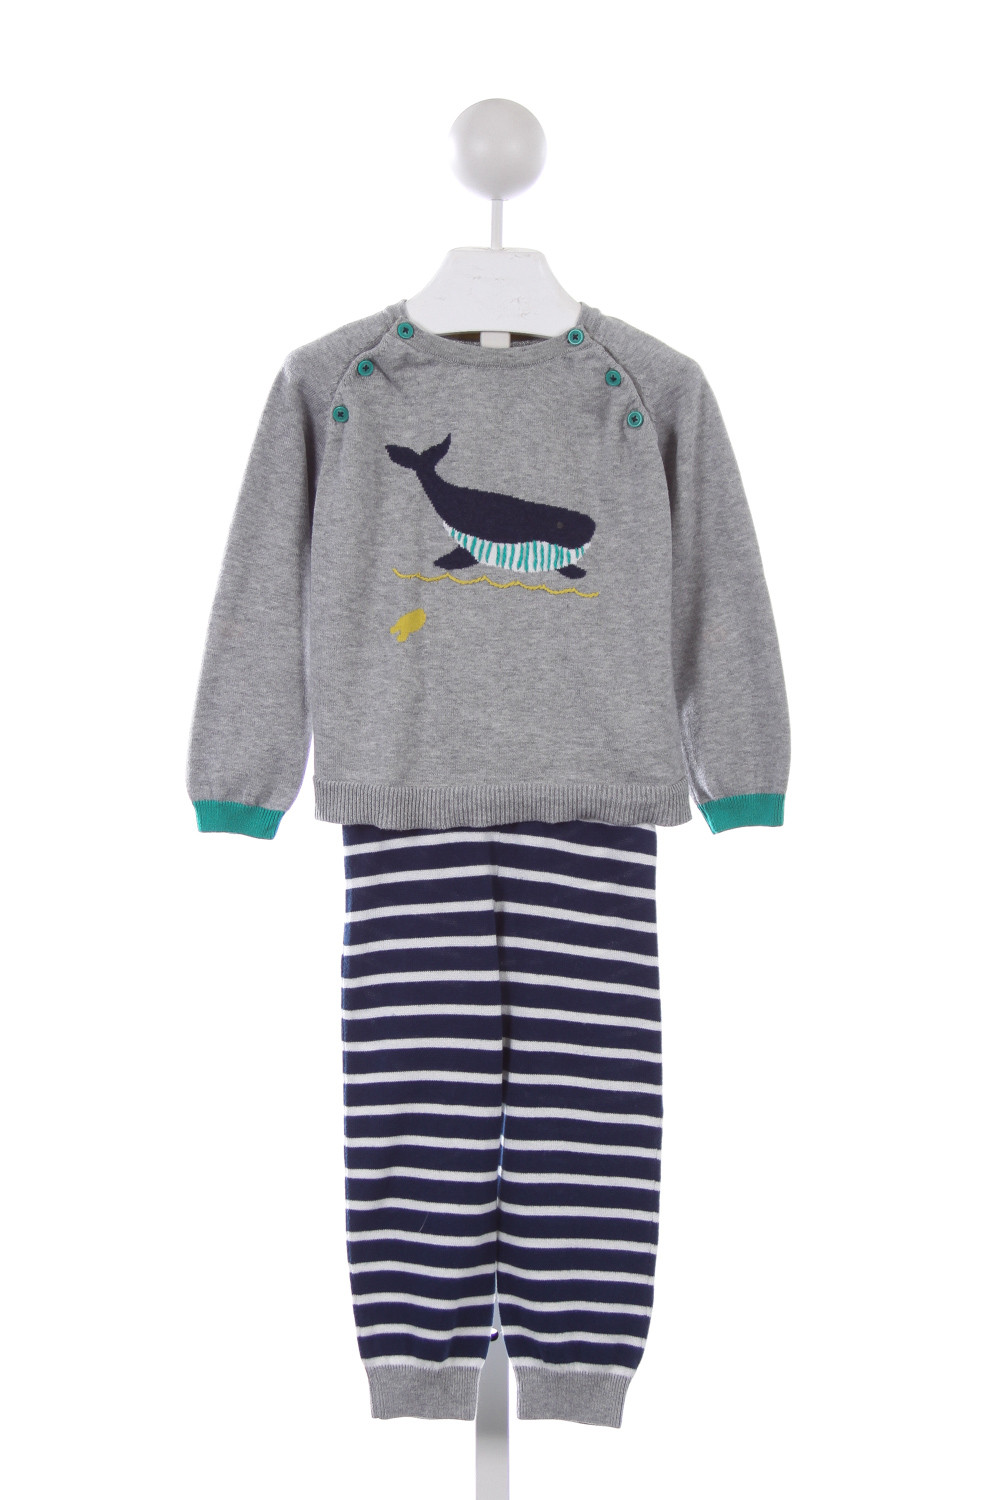 BABY BODEN GRAY AND NAVY WHALE SWEATER SET *SIZE 2-3 - 2T - Boys